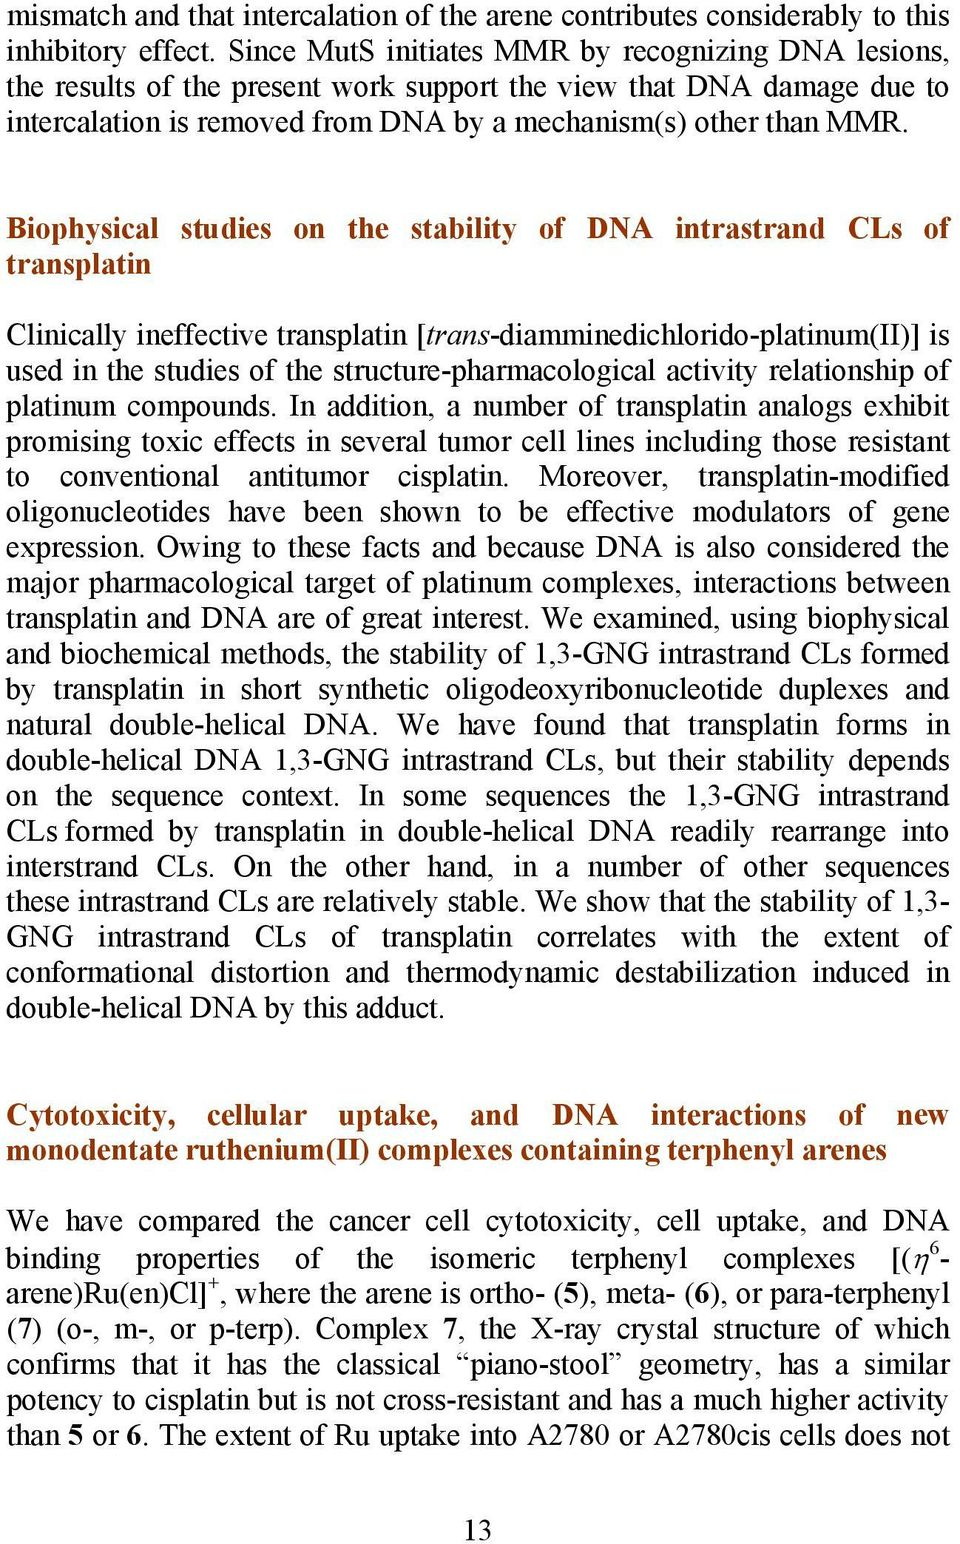 Biophysical transplatin studies on the stability of DNA intrastrand CLs of Clinically ineffective transplatin [trans-diamminedichlorido-platinum(ii)] is used in the studies of the